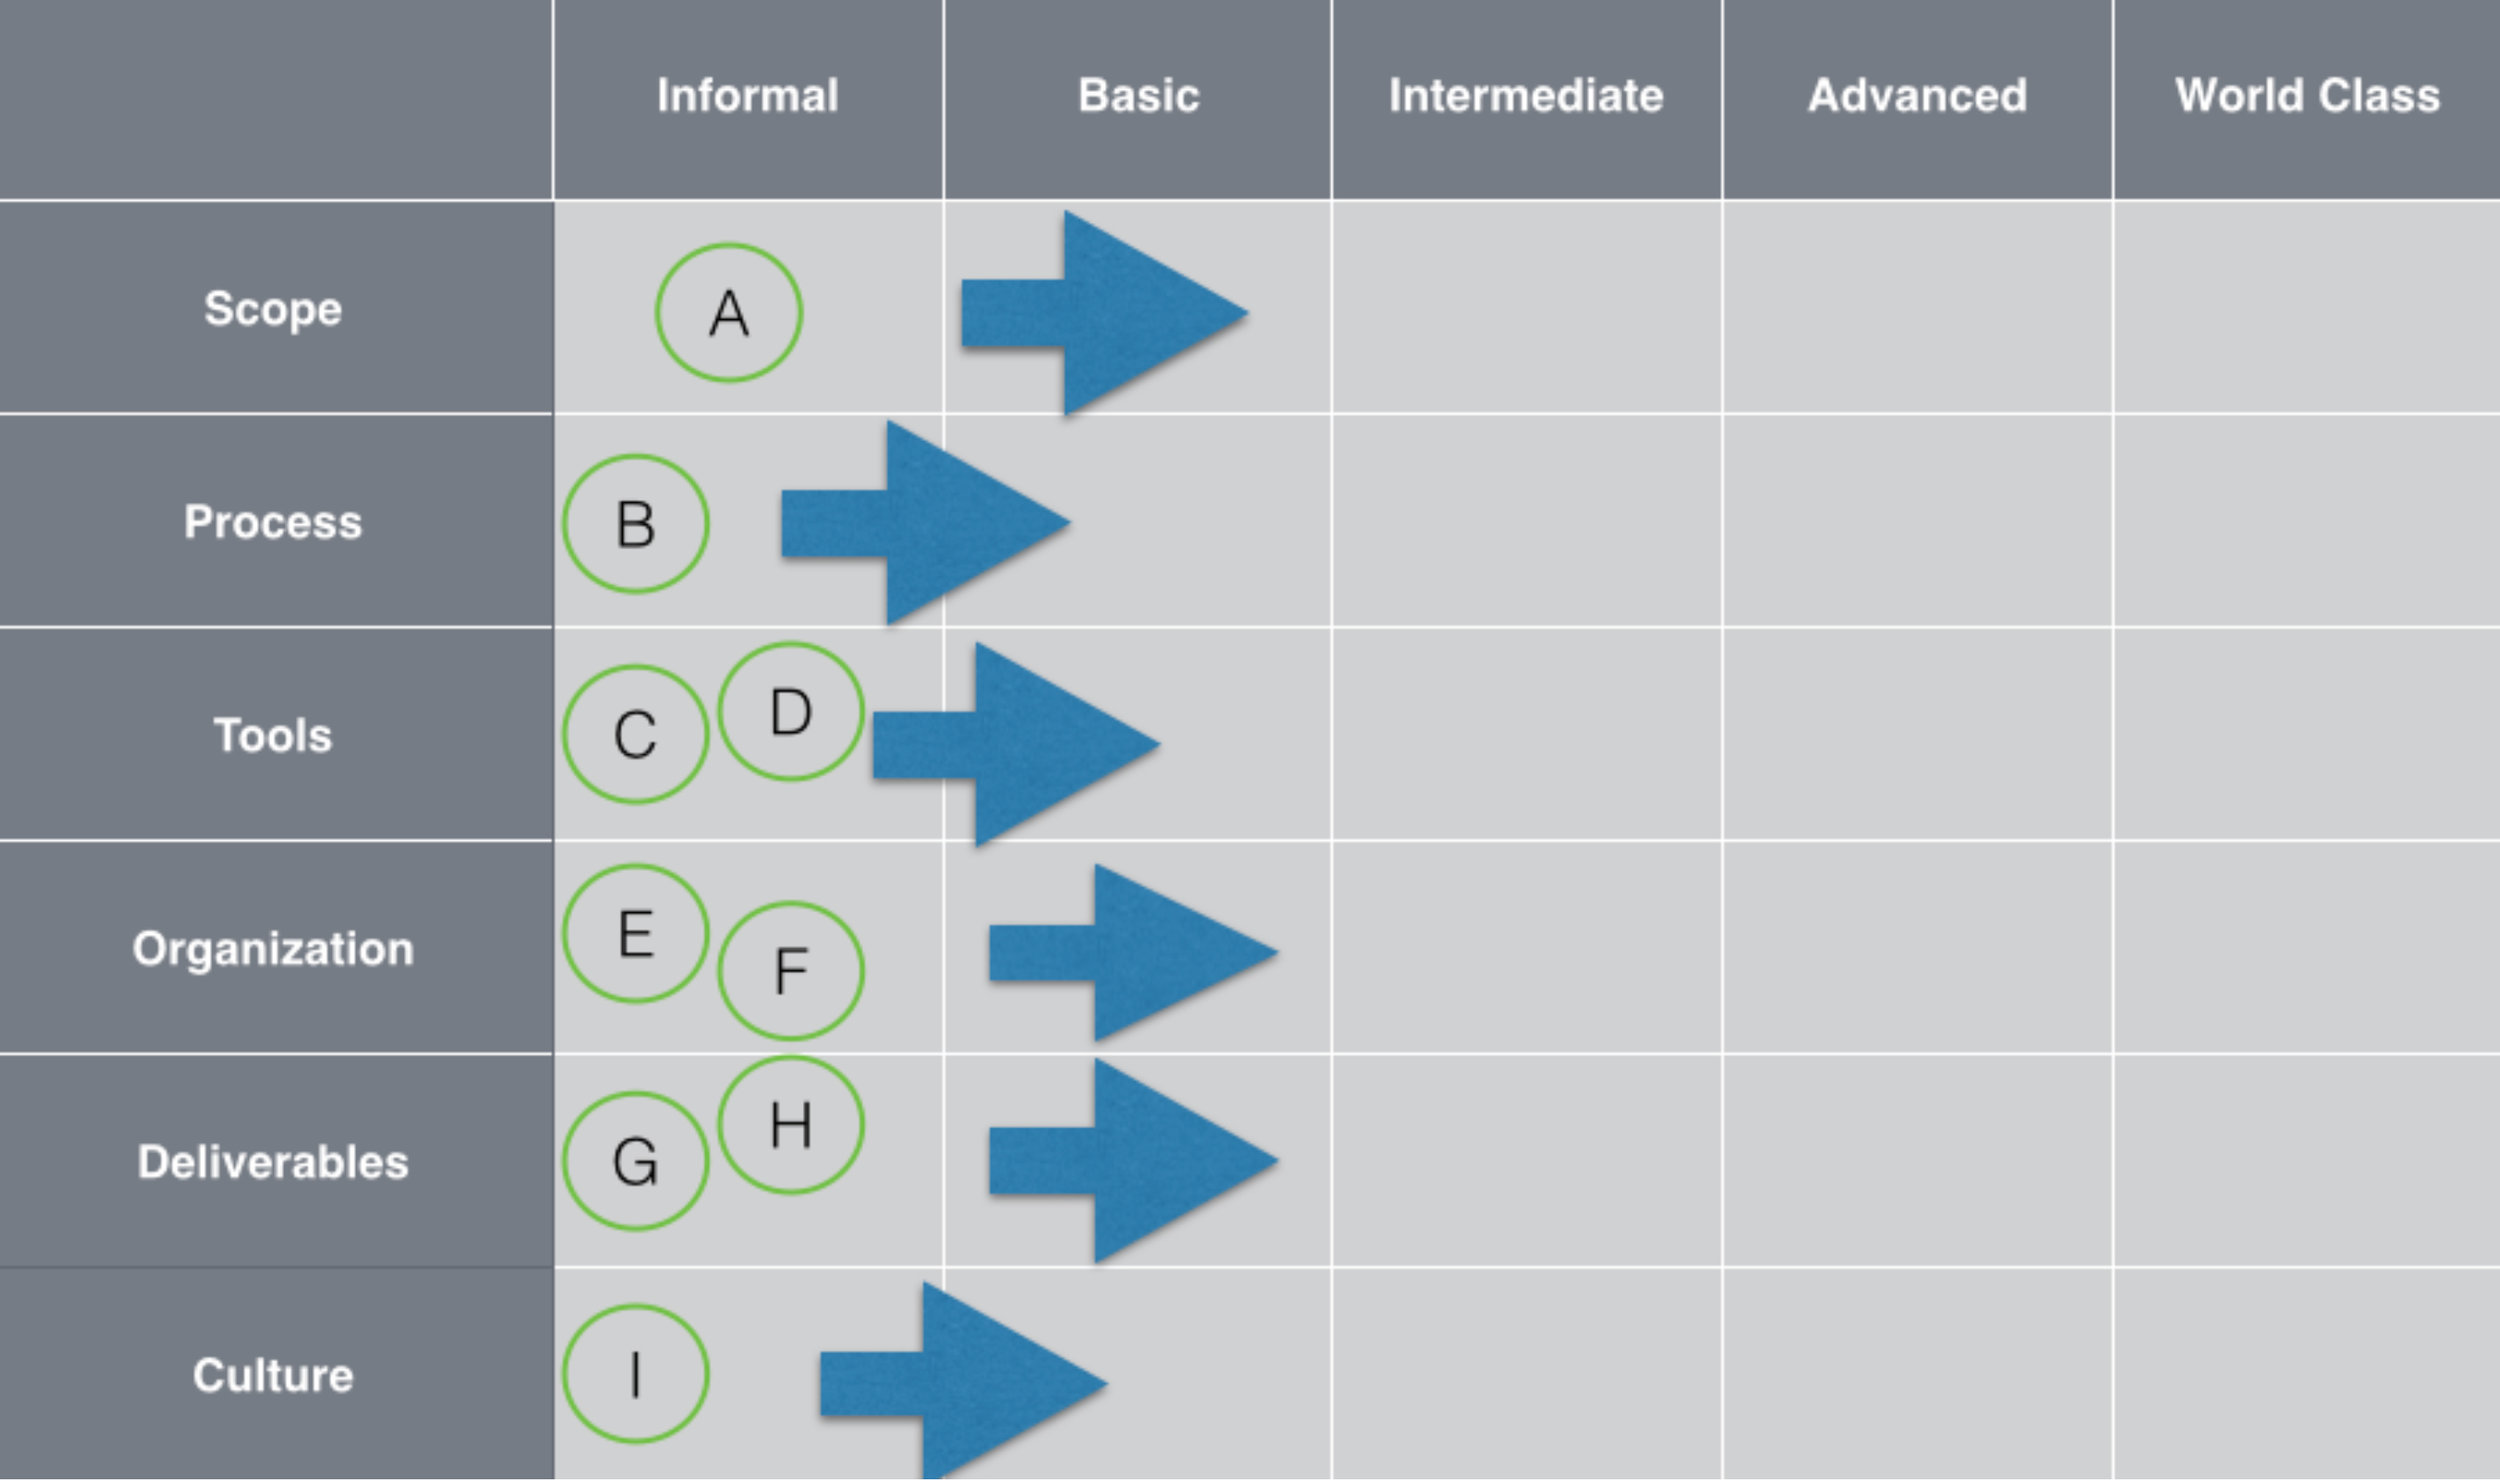 Market & Competitive Intelligence Function Development Roadmap - Status Quo Results